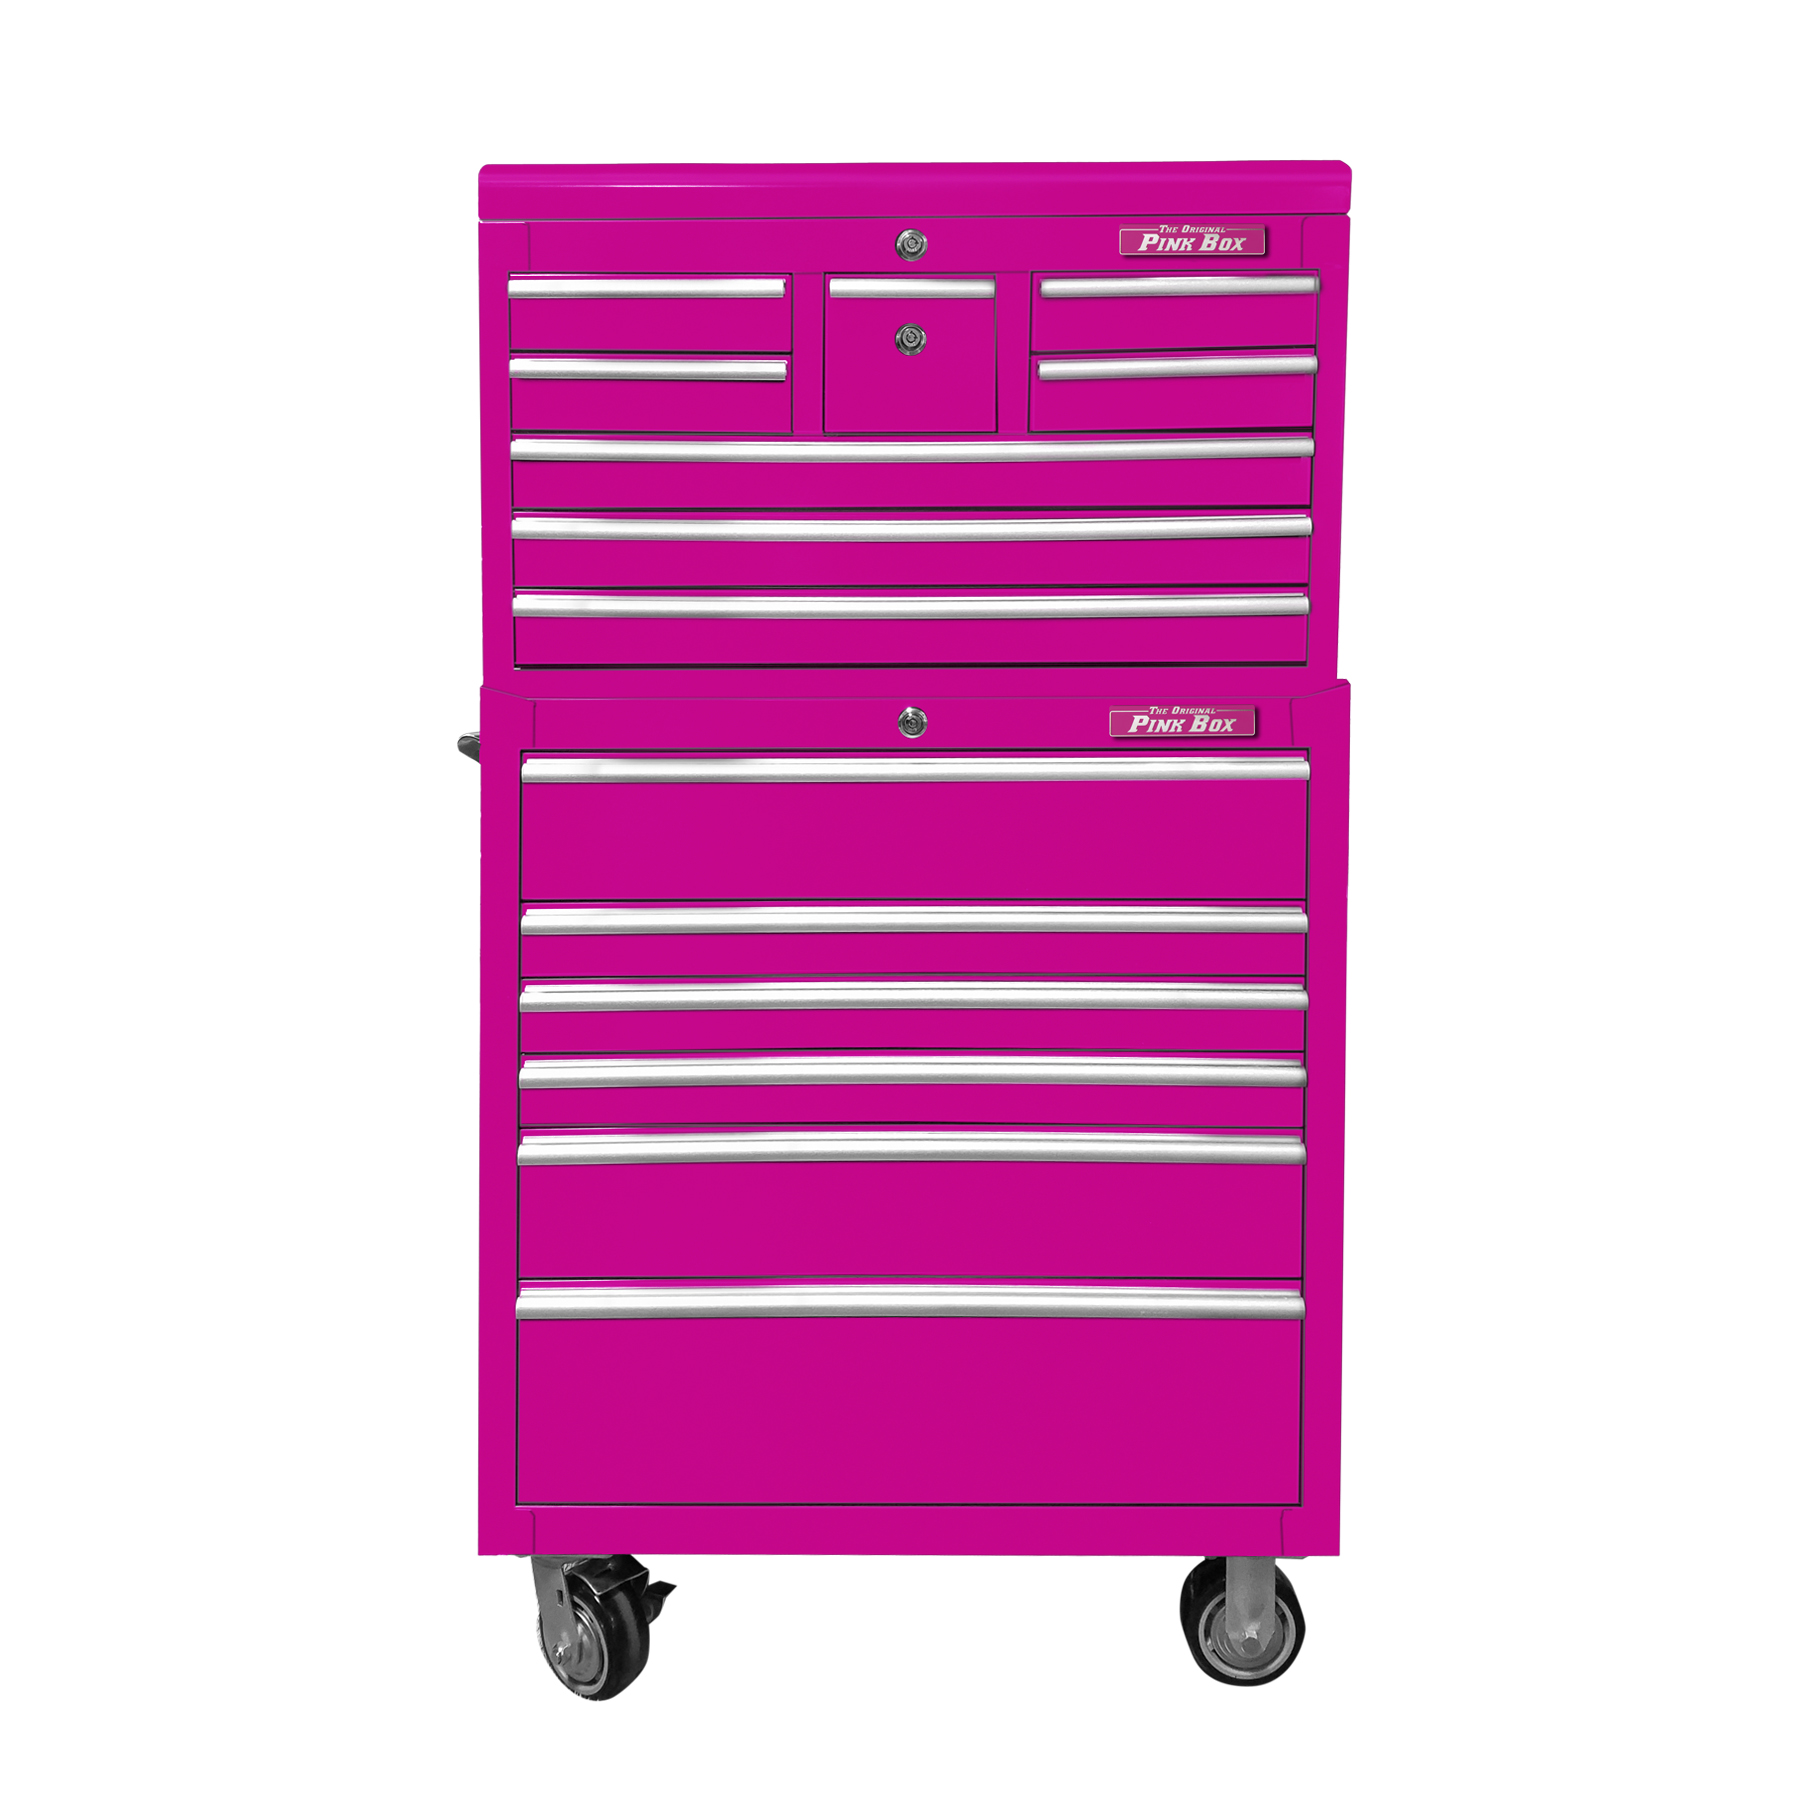 usm furniture drawers george fmt drawer chest wid op of default p pink block hei pd bedroom qlt sharp resmode colour